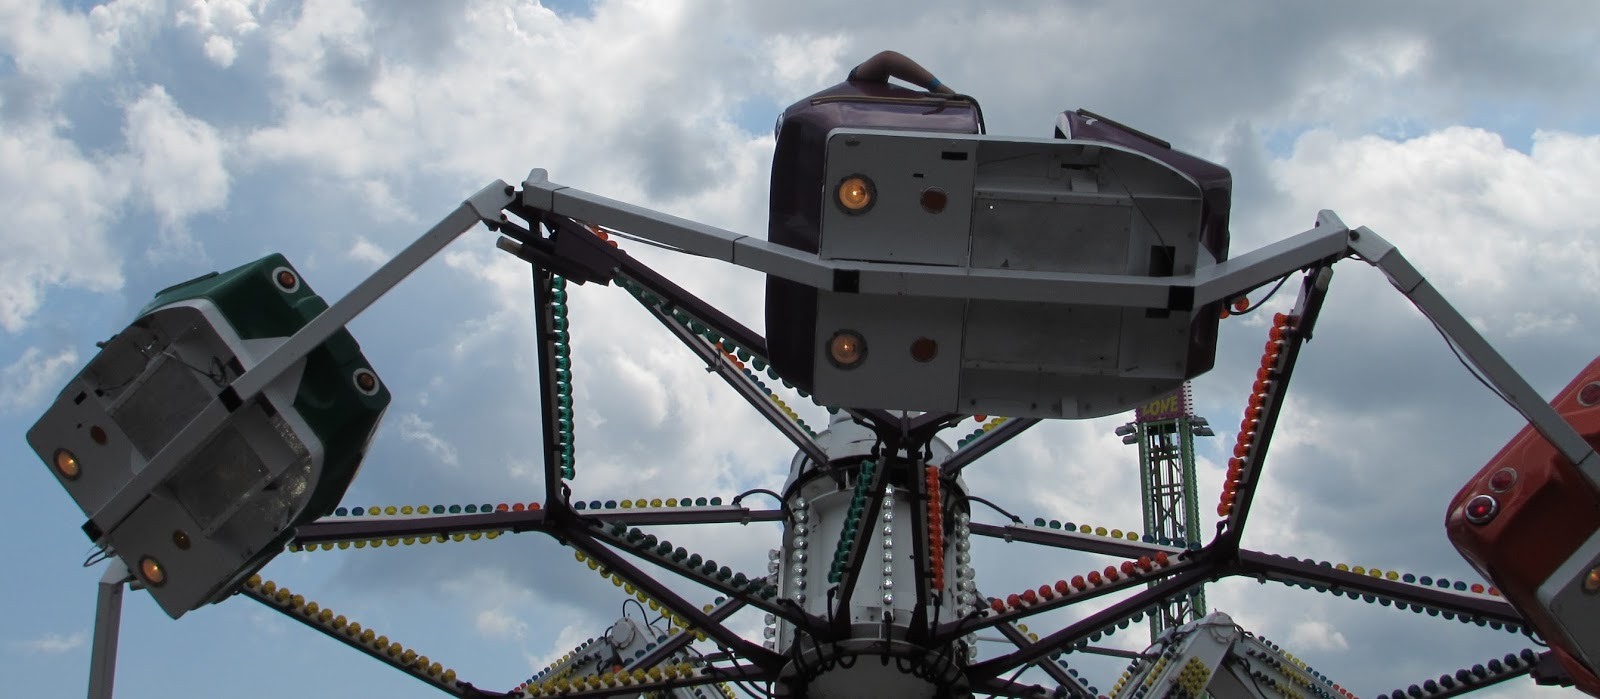 Palace Playland at Old Orchard Beach, Maine | Coaster Talk No BS Zone